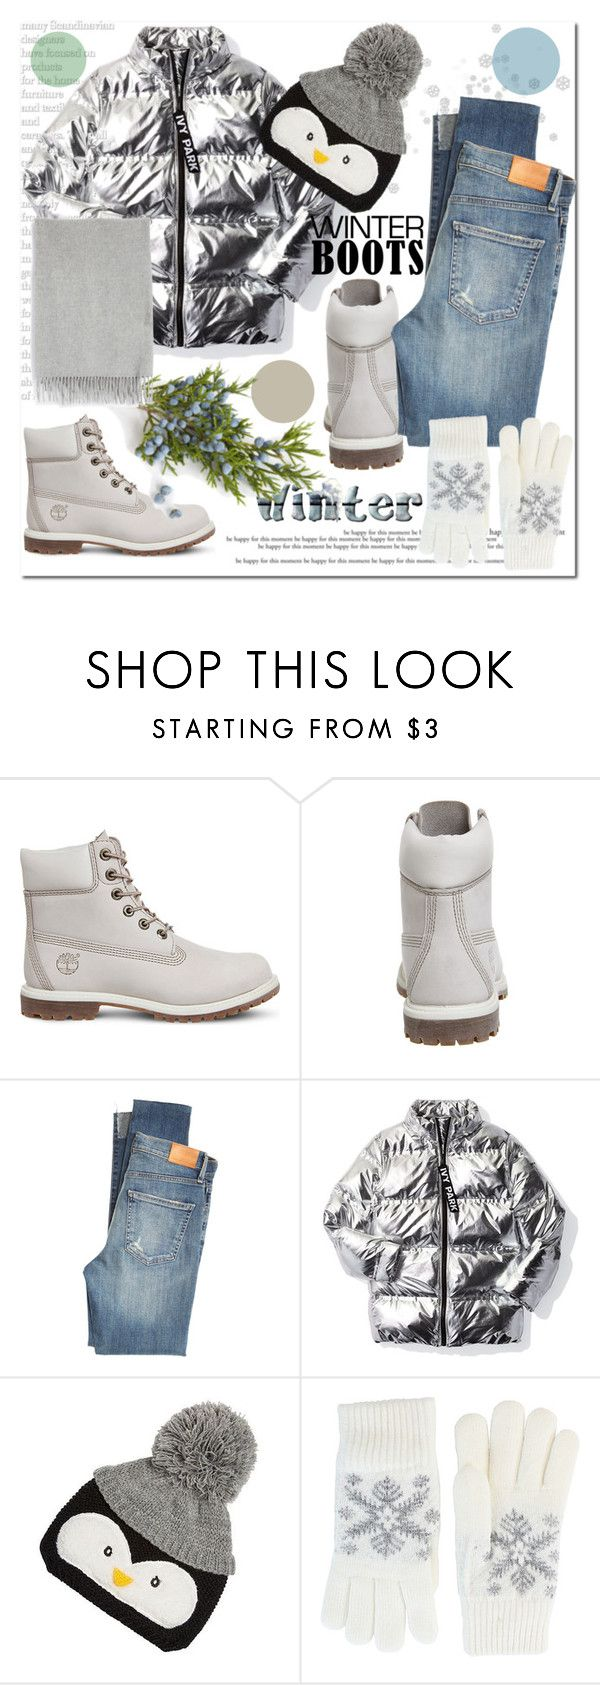 """""""Winter Boots"""" by ilona-828 ❤ liked on Polyvore featuring Timberland, Citizens of Humanity, Ivy Park, Fits, Acne Studios, StreetStyle, Winter, polyvoreeditorial and winterboots"""